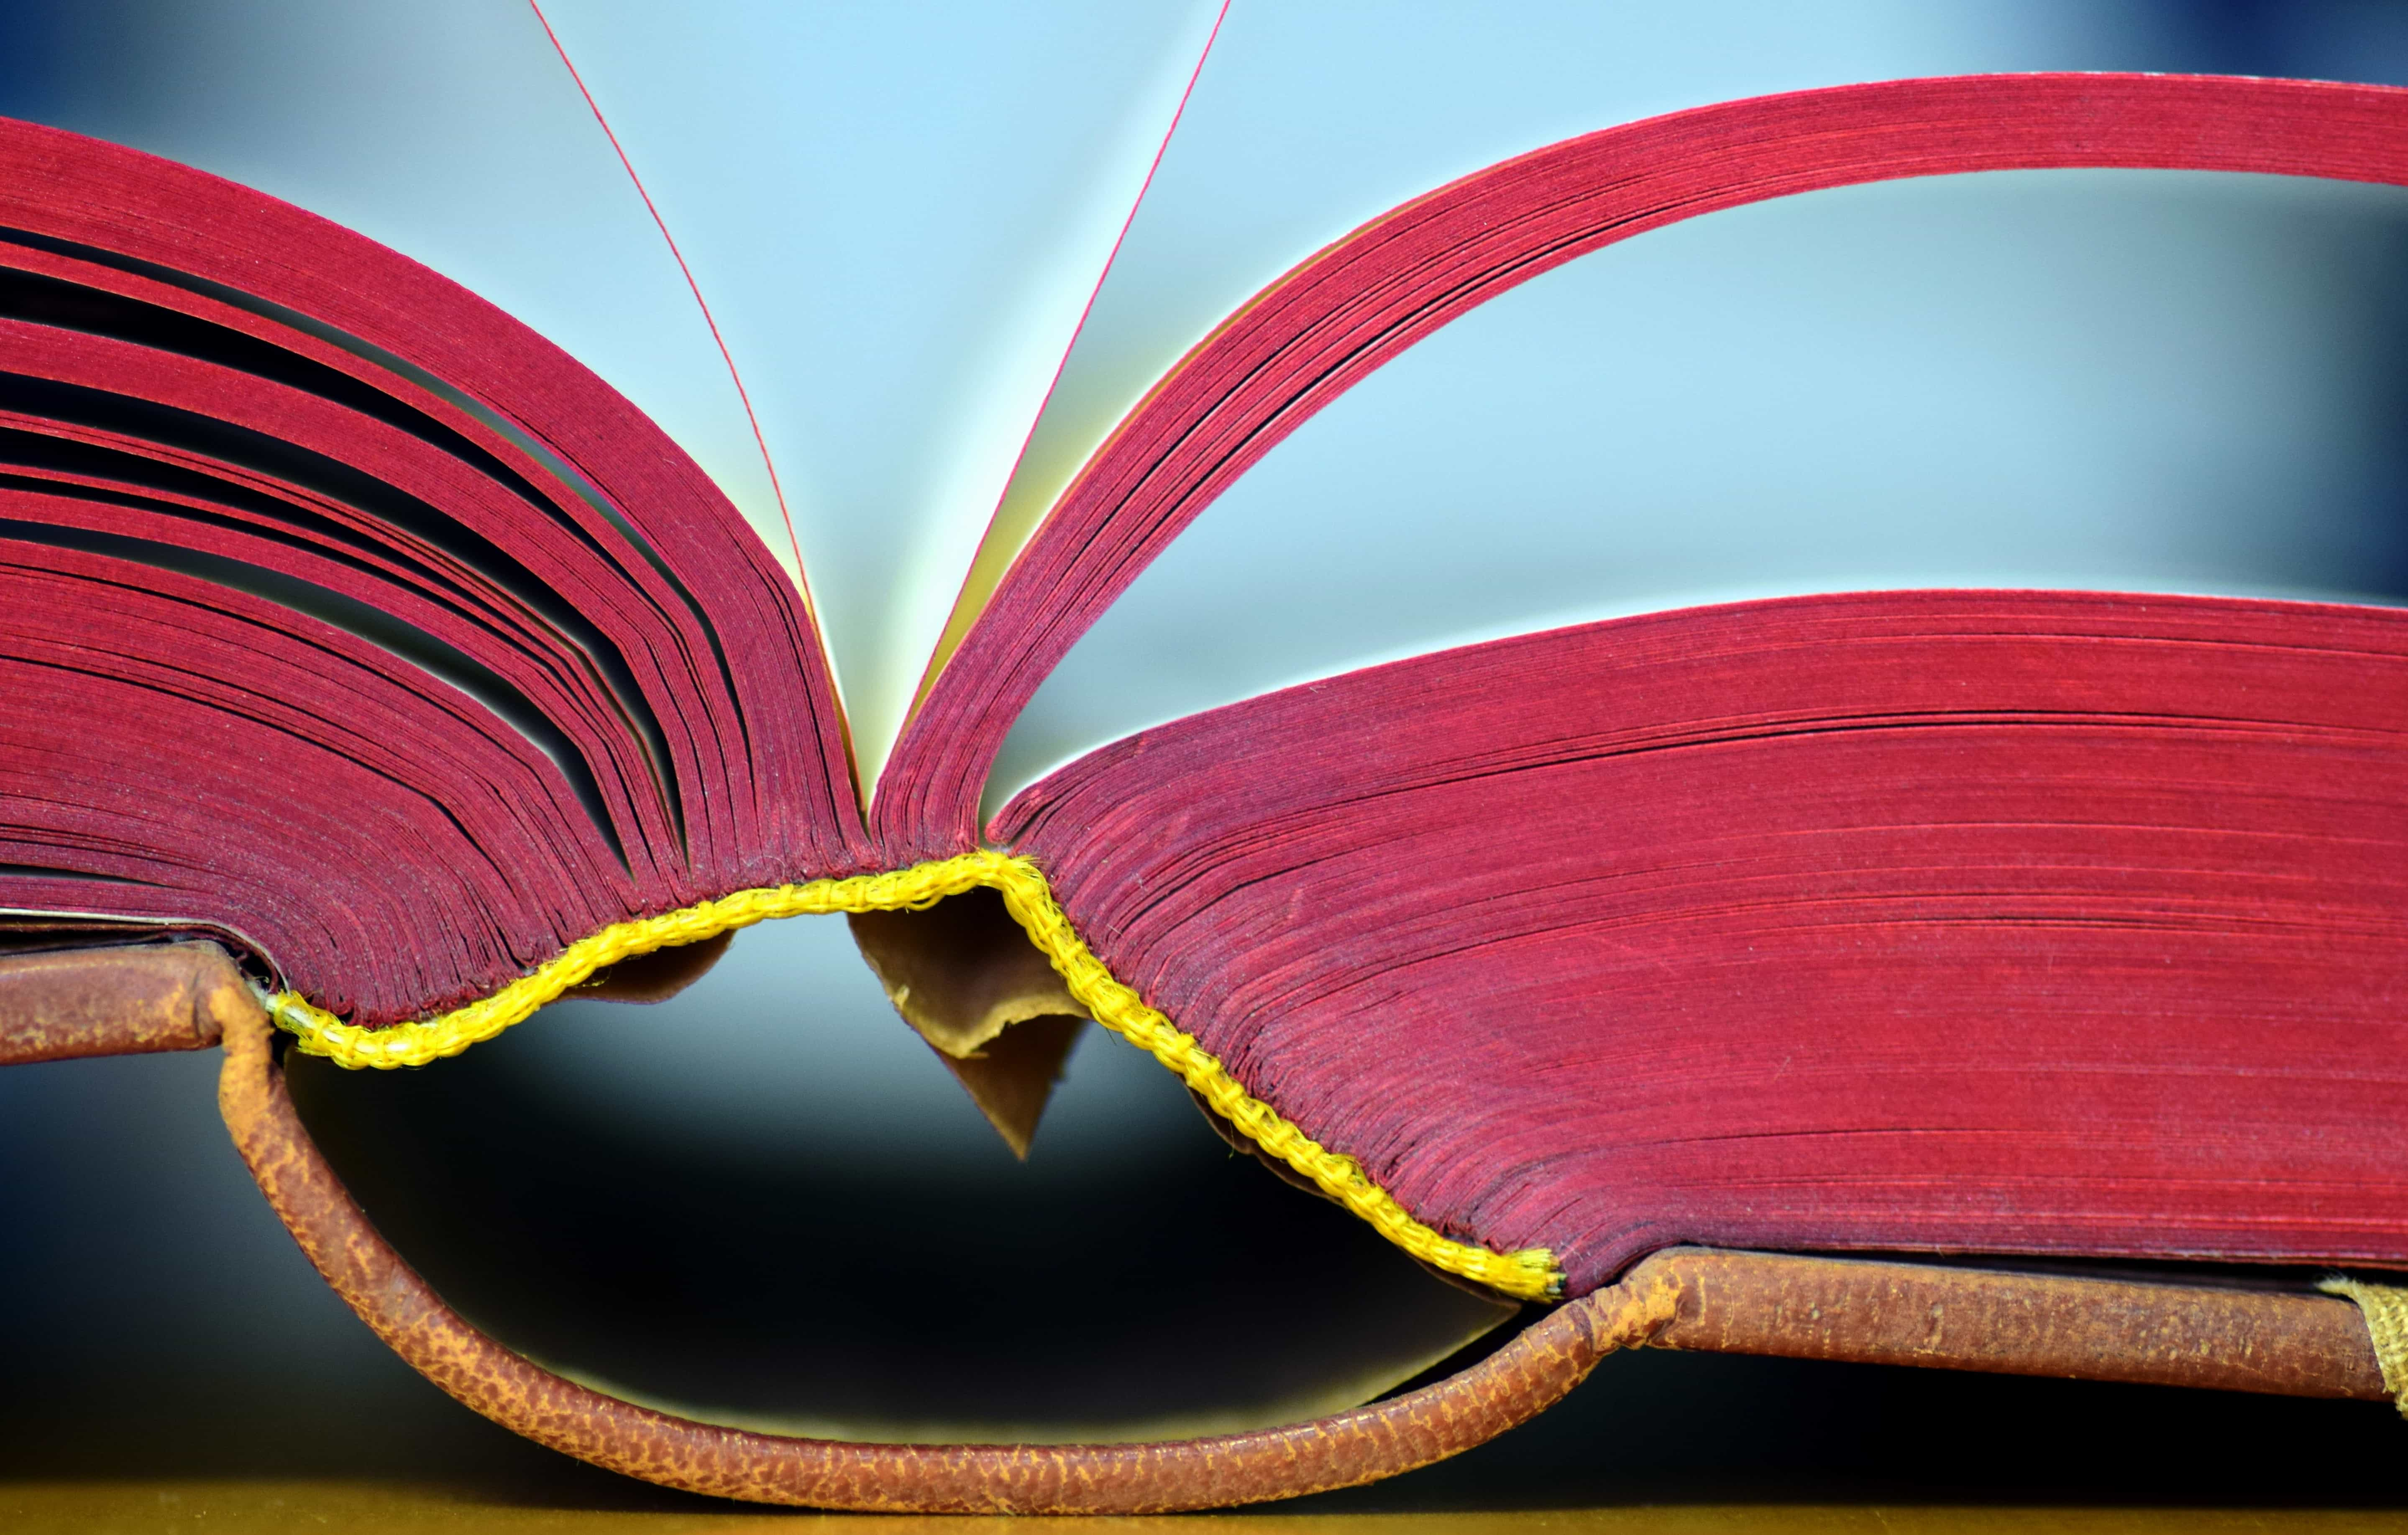 free picture  book  learning  red  paper  macro  object